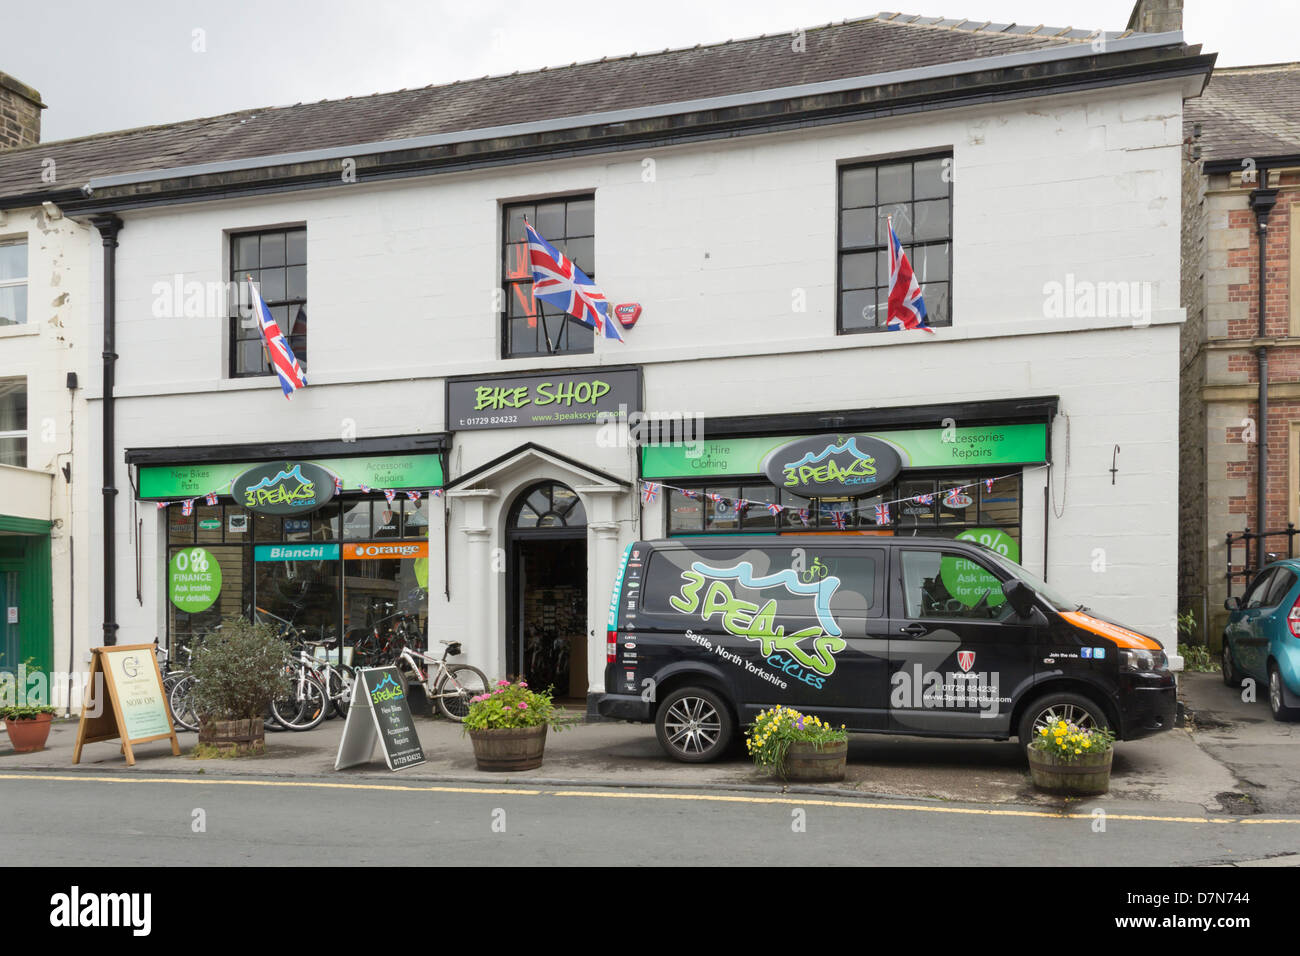 The 3 Peaks Cycles shop and company van on Market Place in Settle, North Yorkshire. - Stock Image